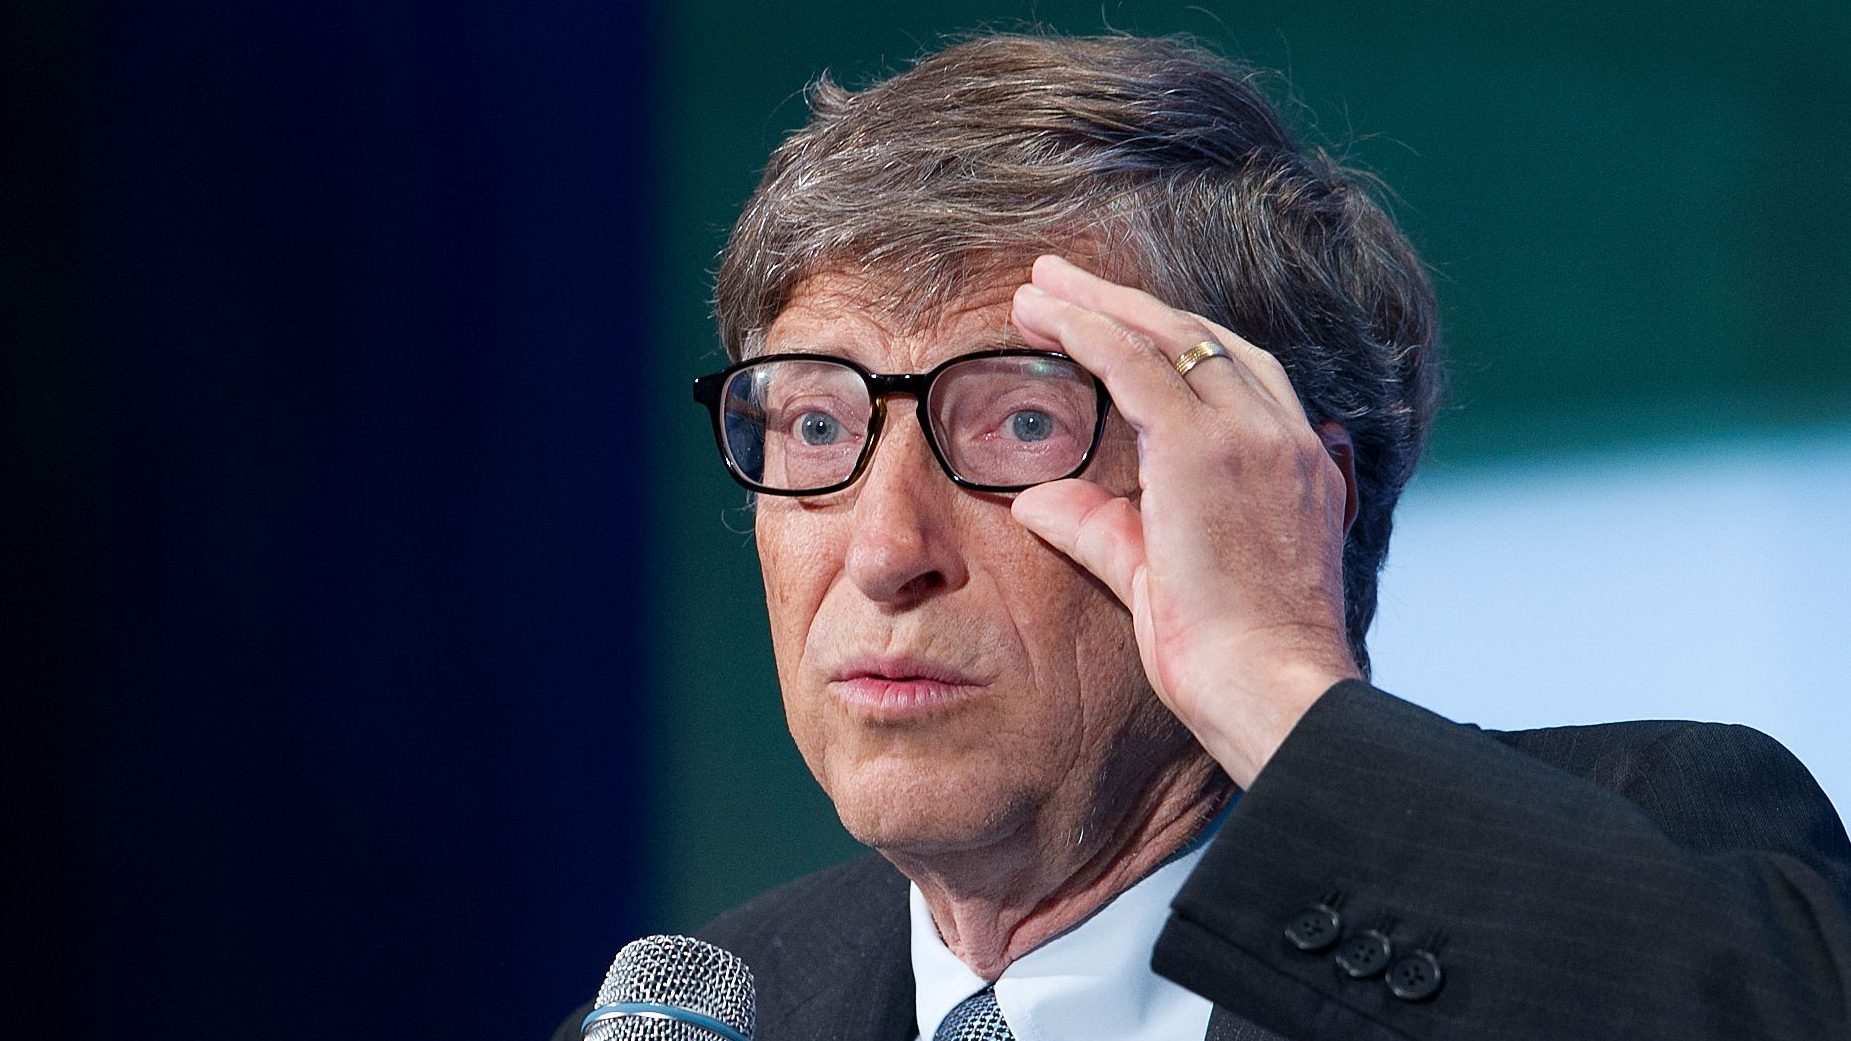 """Bill Gates, co-founder of Microsoft, talks at the Clinton Global Initiative, Tuesday, Sept. 24, 2013 in New York. Gates was participating in a panel discussion on, """"Big Bets"""" Philanthropy: Partnership, Risk-Taking, and Innovation.""""  (AP Photo/Mark Lennihan)"""